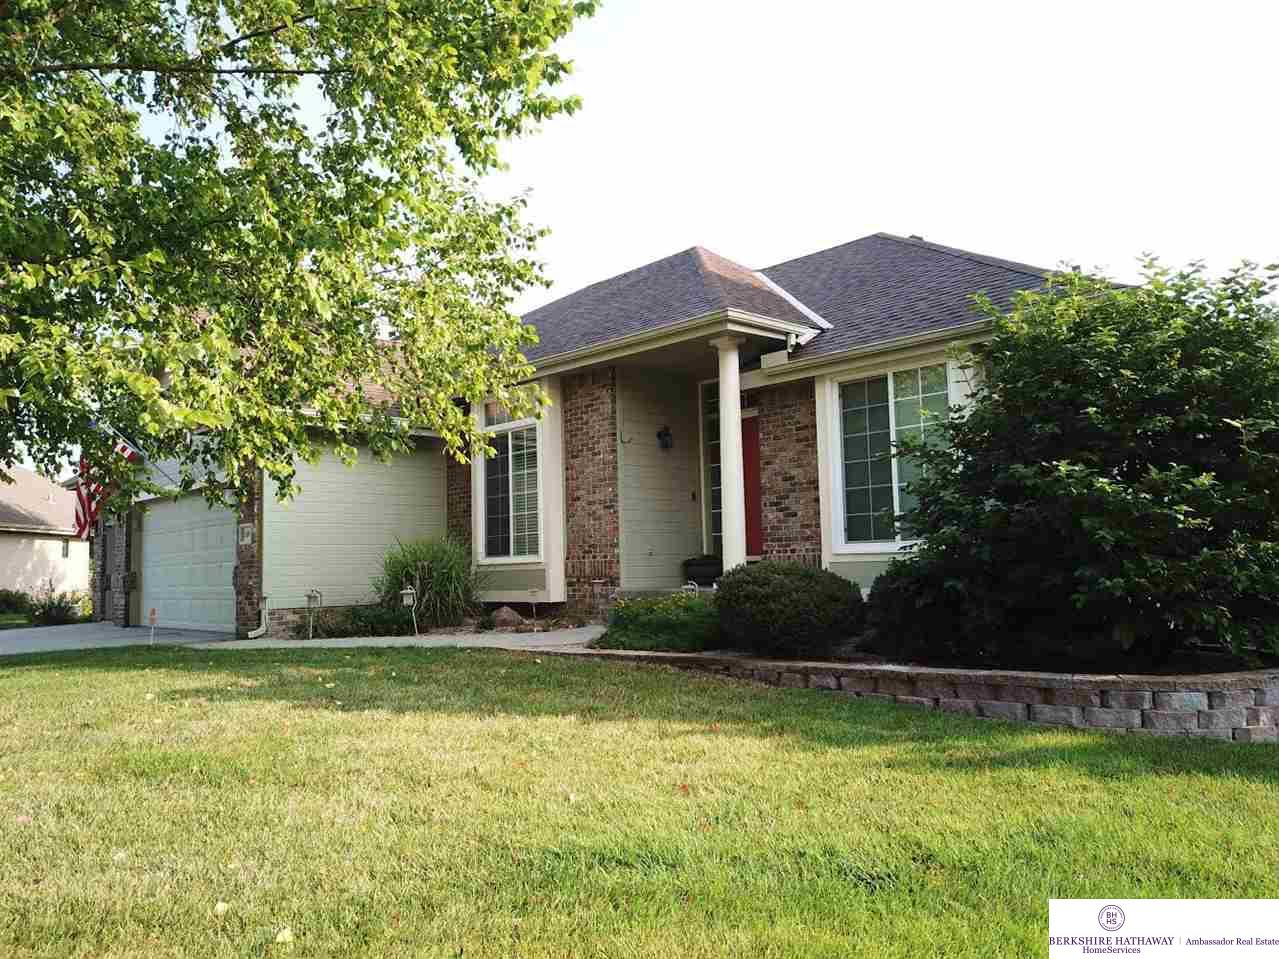 16804 I Circle Omaha Home Listings - Nancy Heim-berg Real Estate